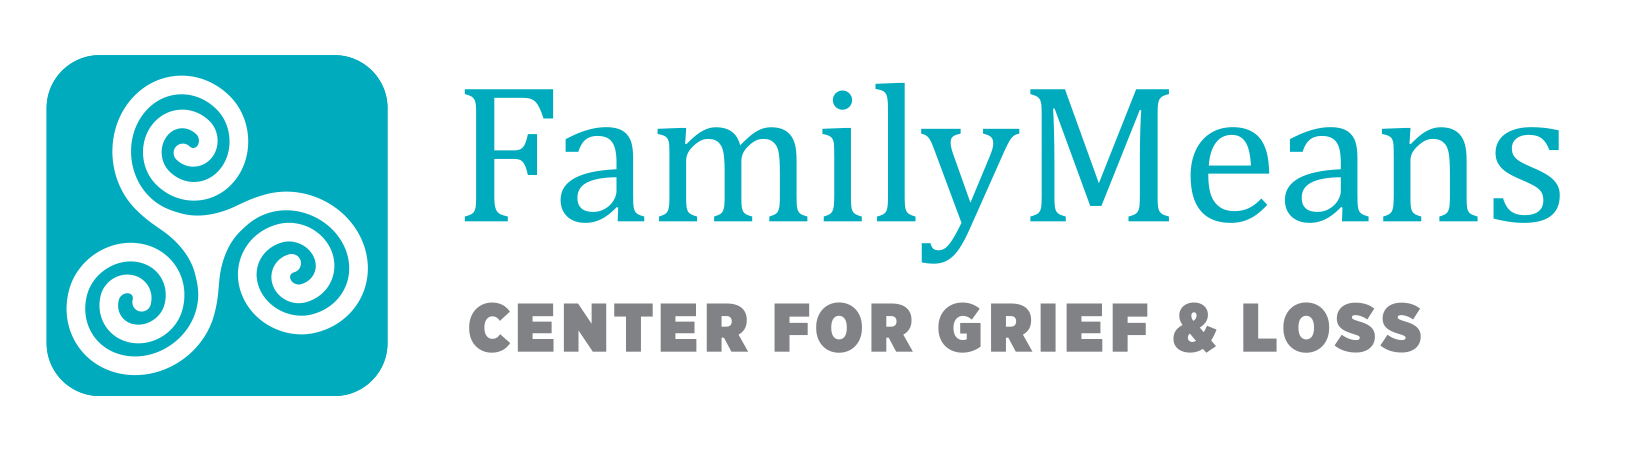 Center for Grief & Loss Logo